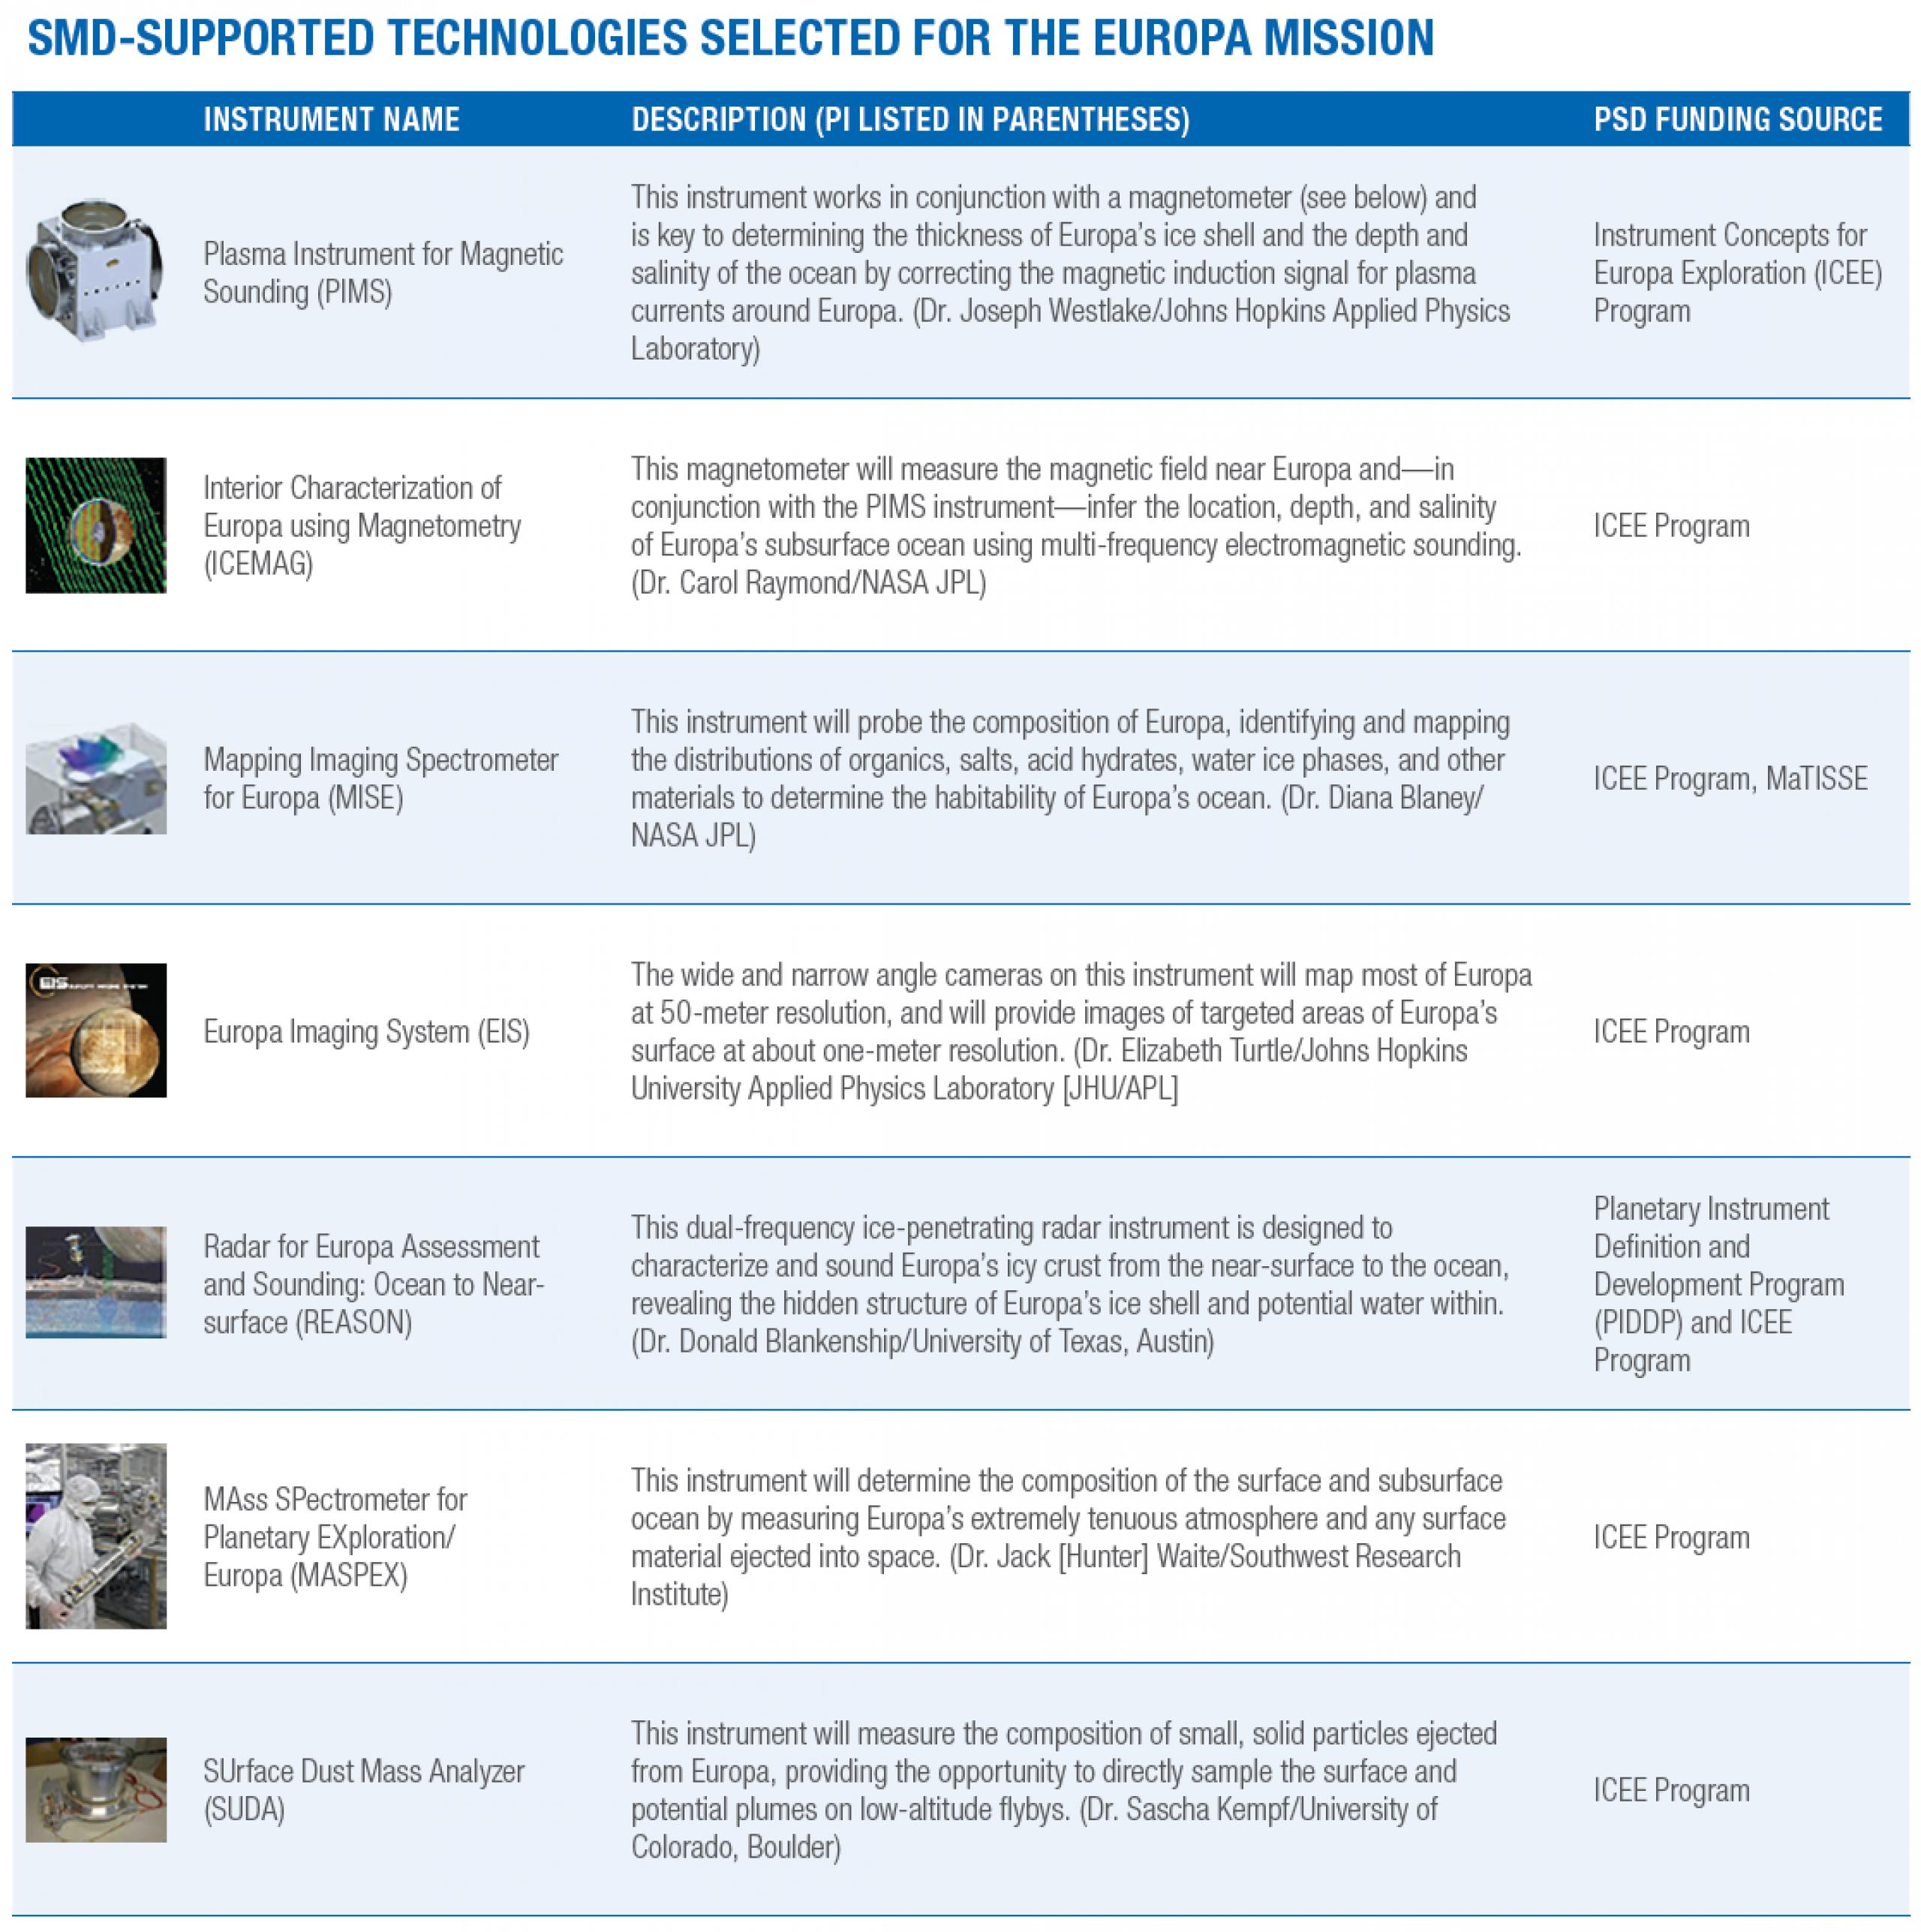 Table of instruments used in Europa mission research